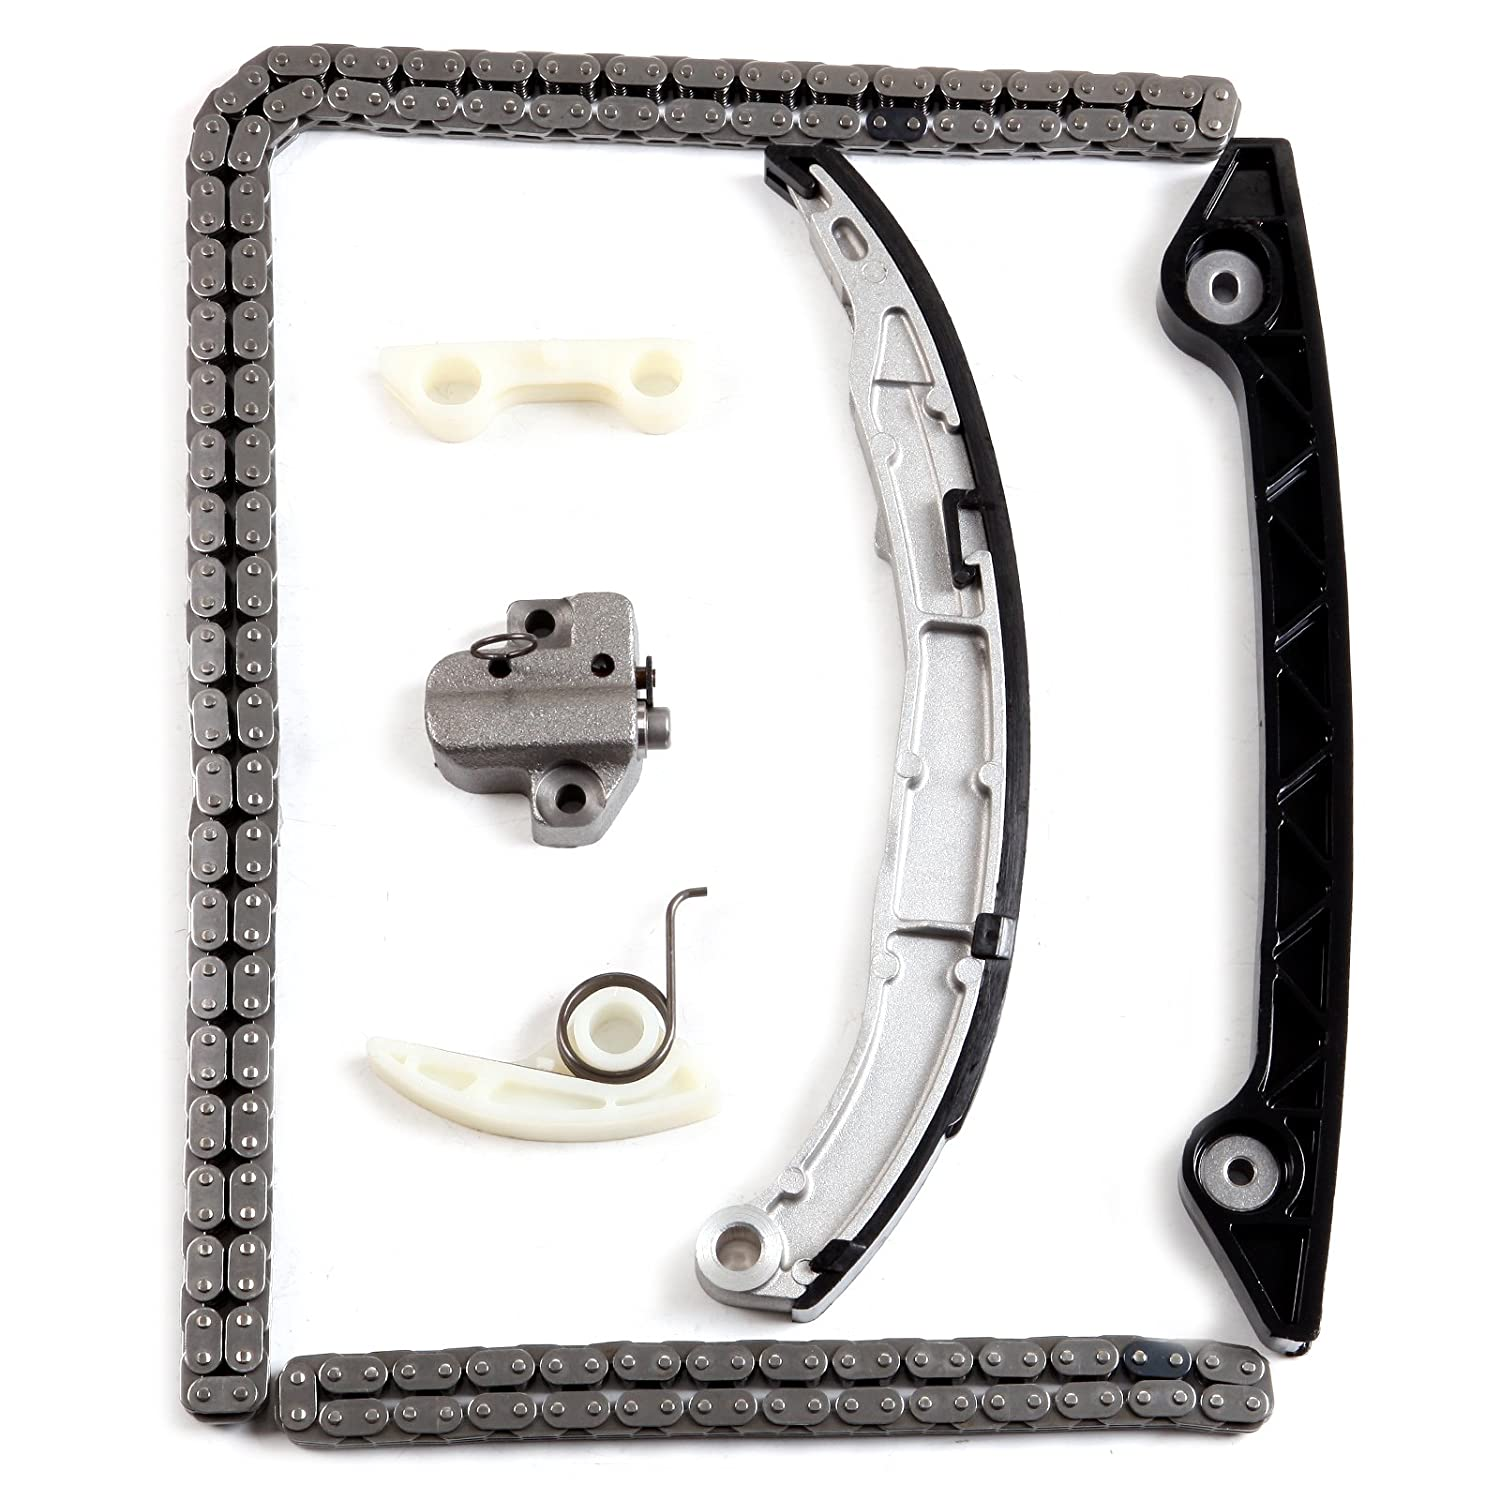 ECCPP Timing Chain Kit for Ford Ranger Mazda B2300 2.3L 4Cyl DOHC 16v